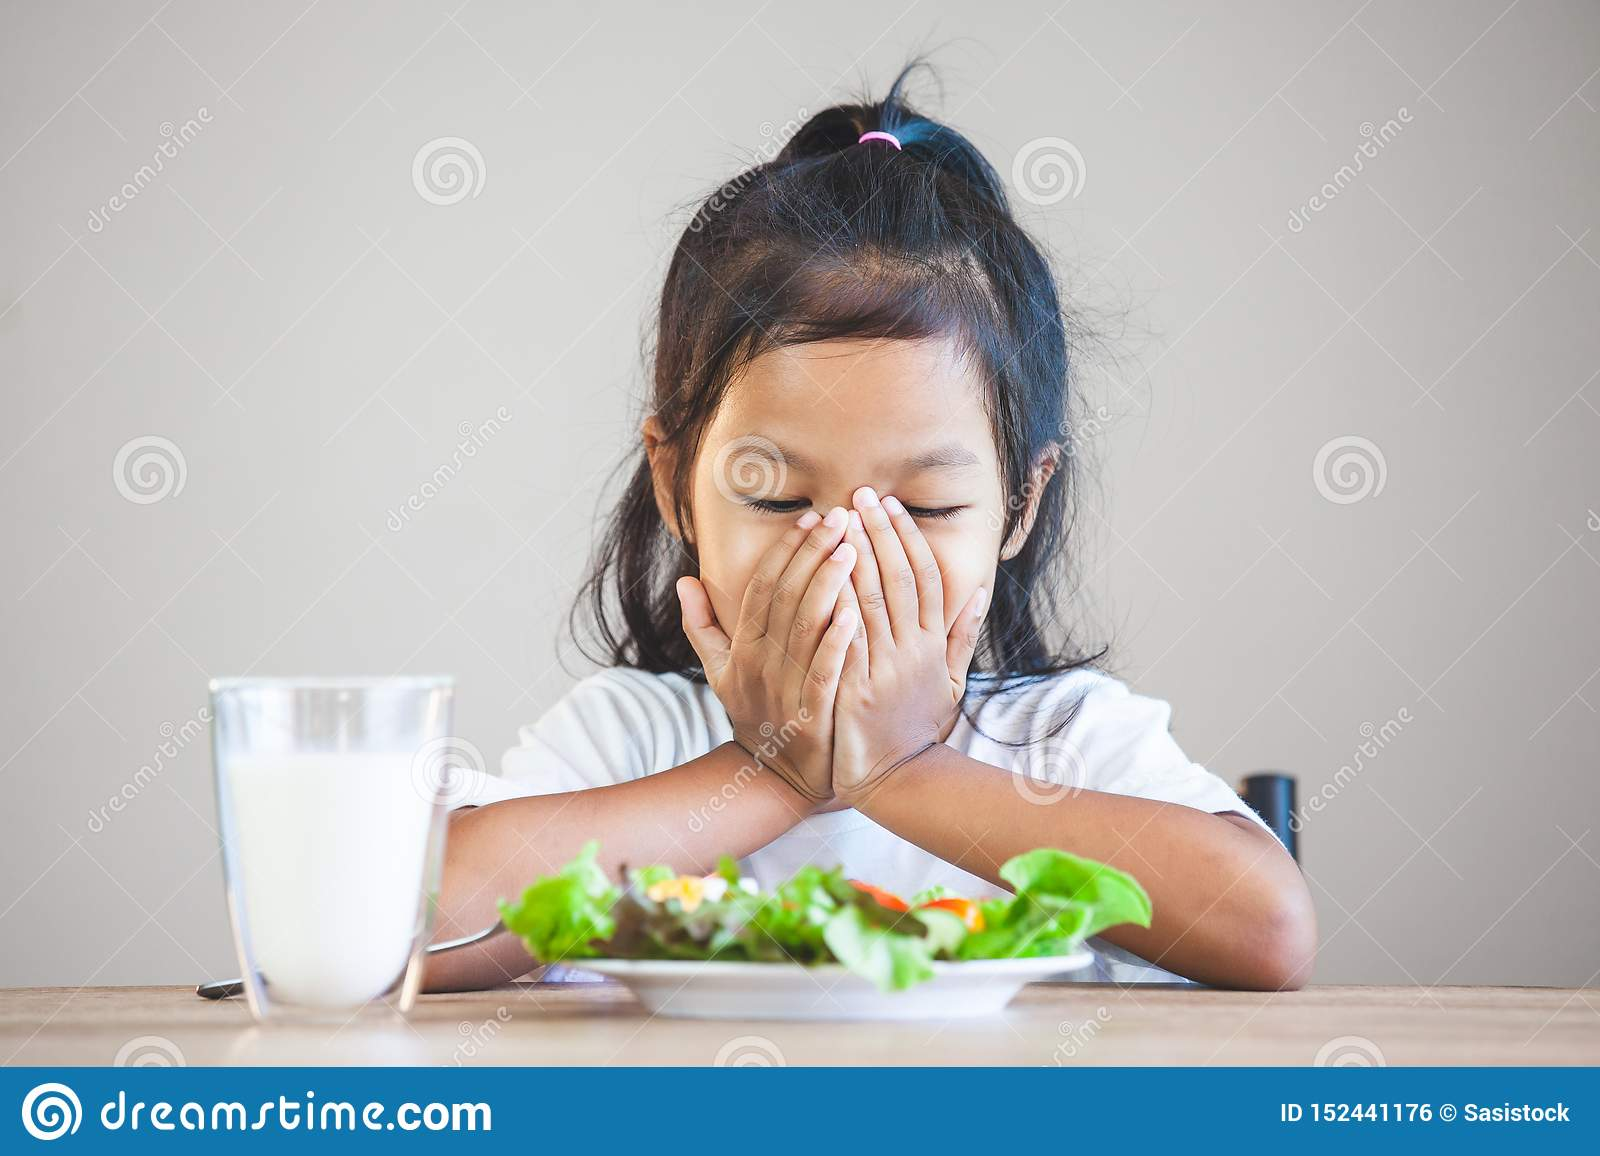 Child Does Not Like To Eat Vegetables And Refuse To Eat ...